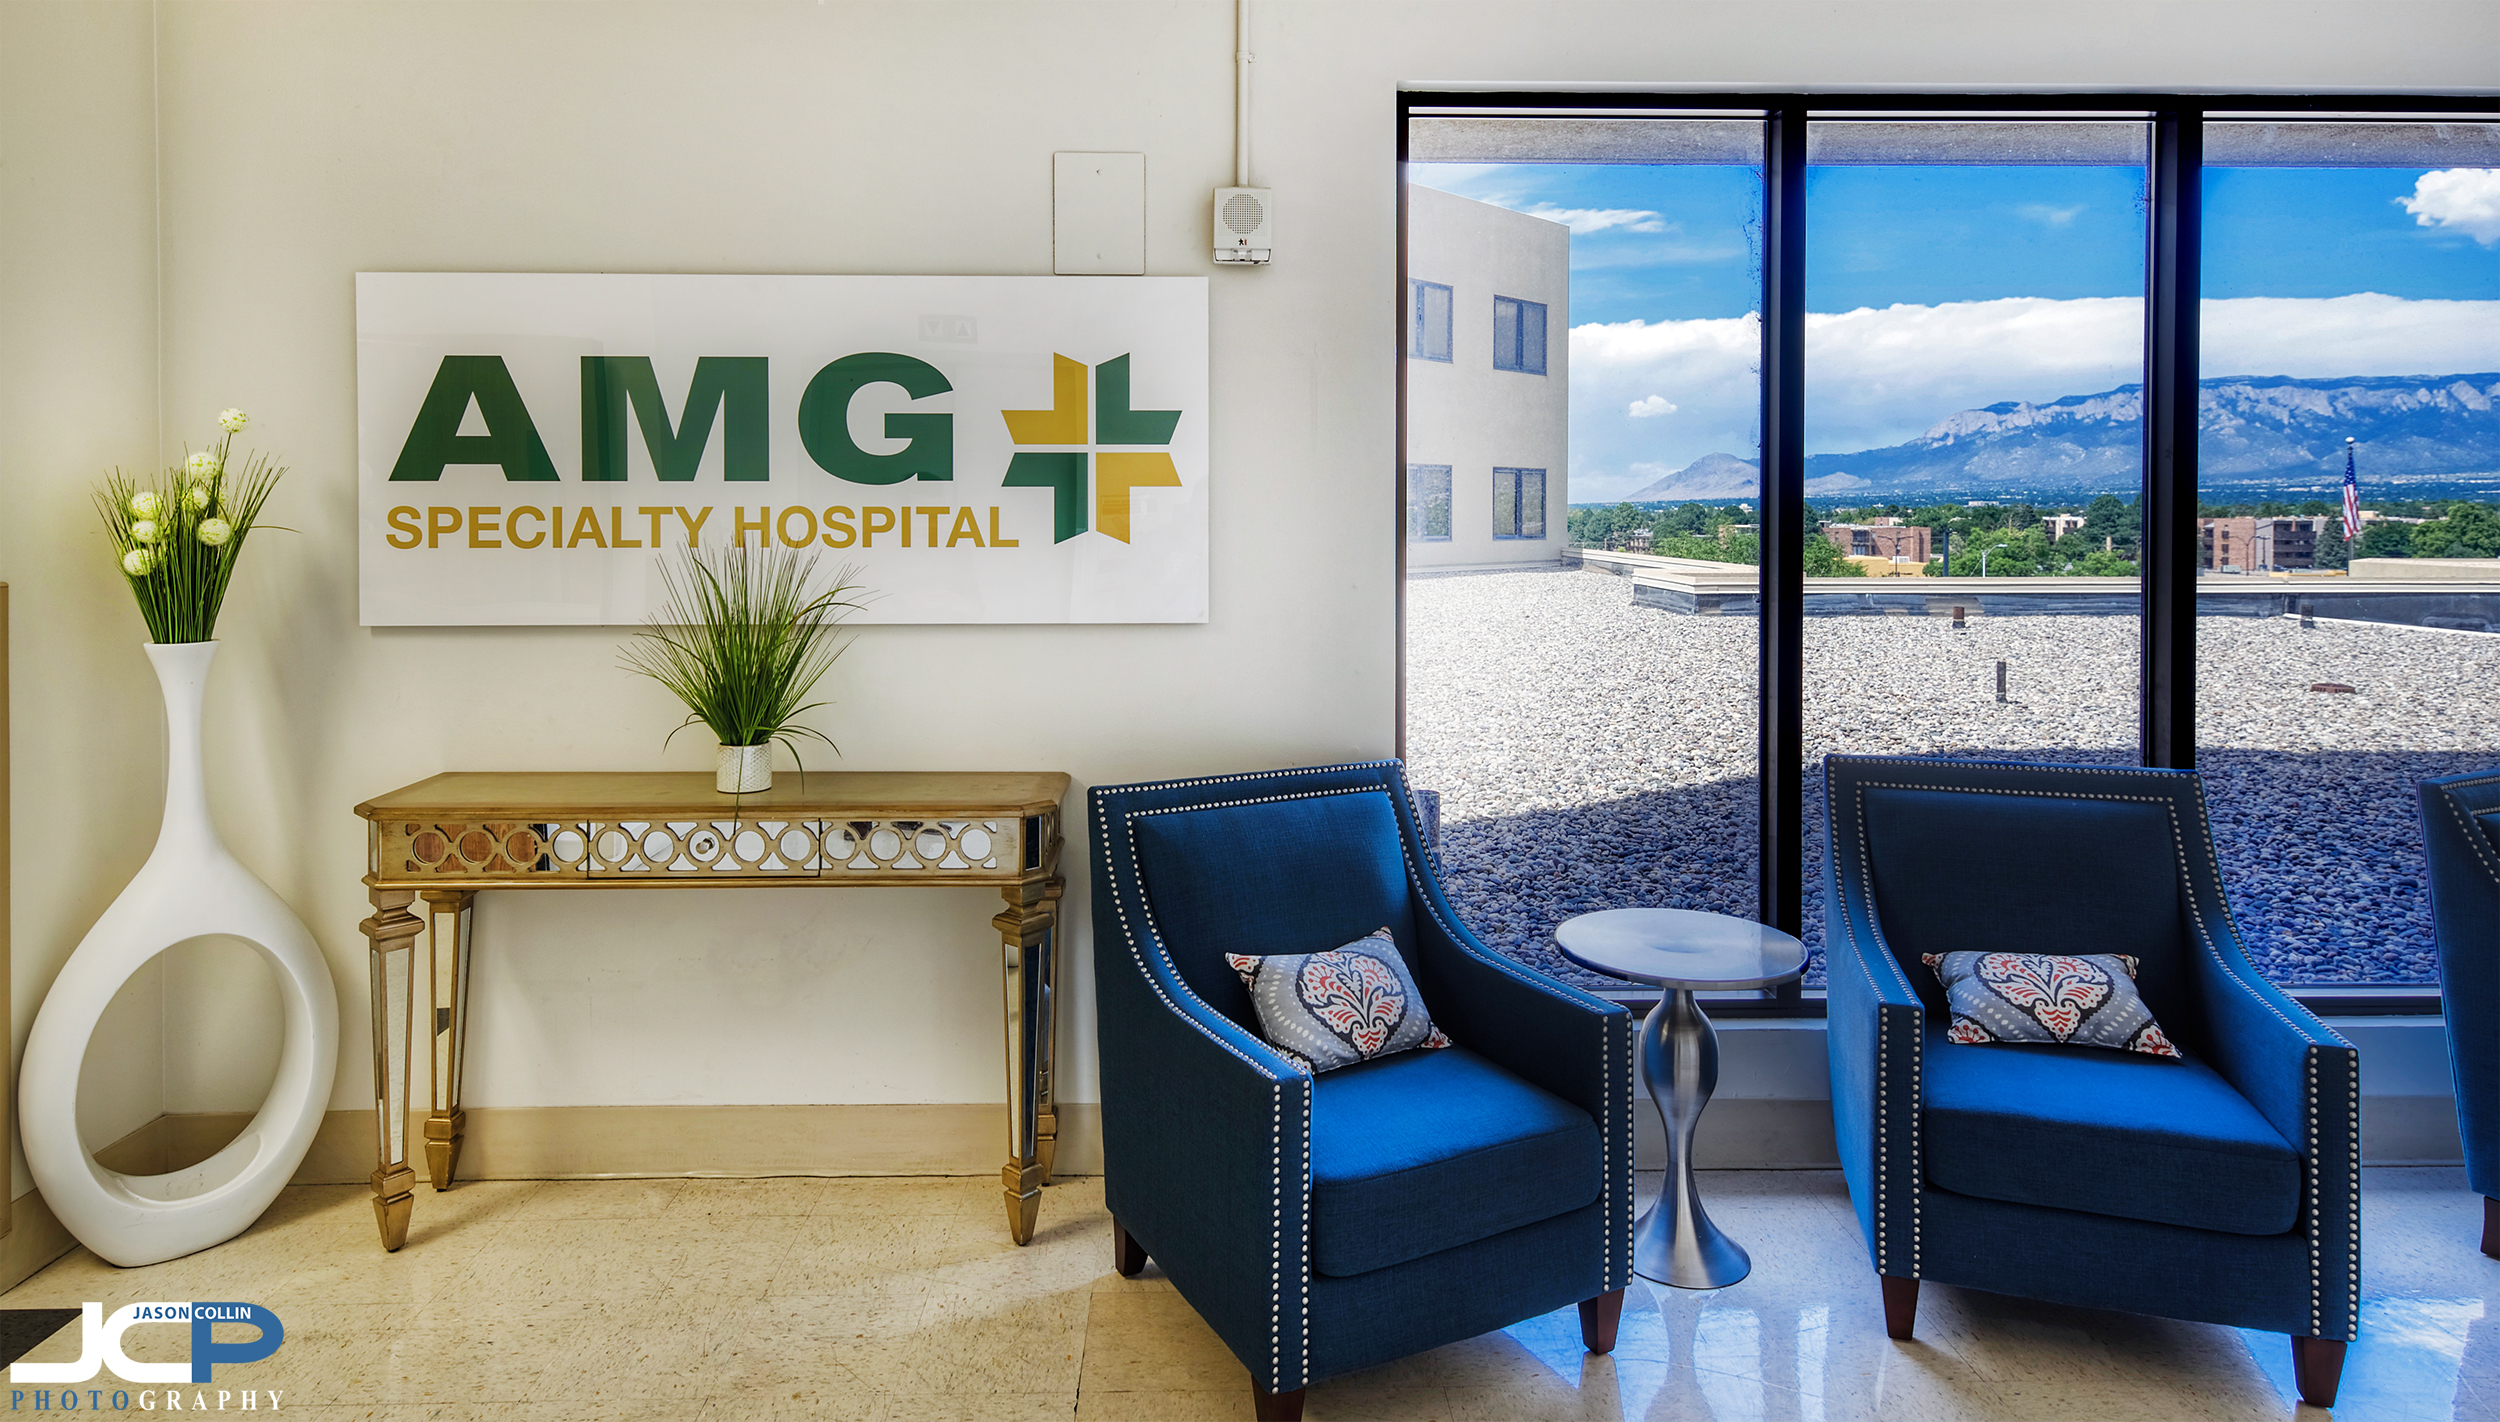 Great views of the Sandia Mountains as you enter AMG Specialty Hospital in Albuquerque New Mexico